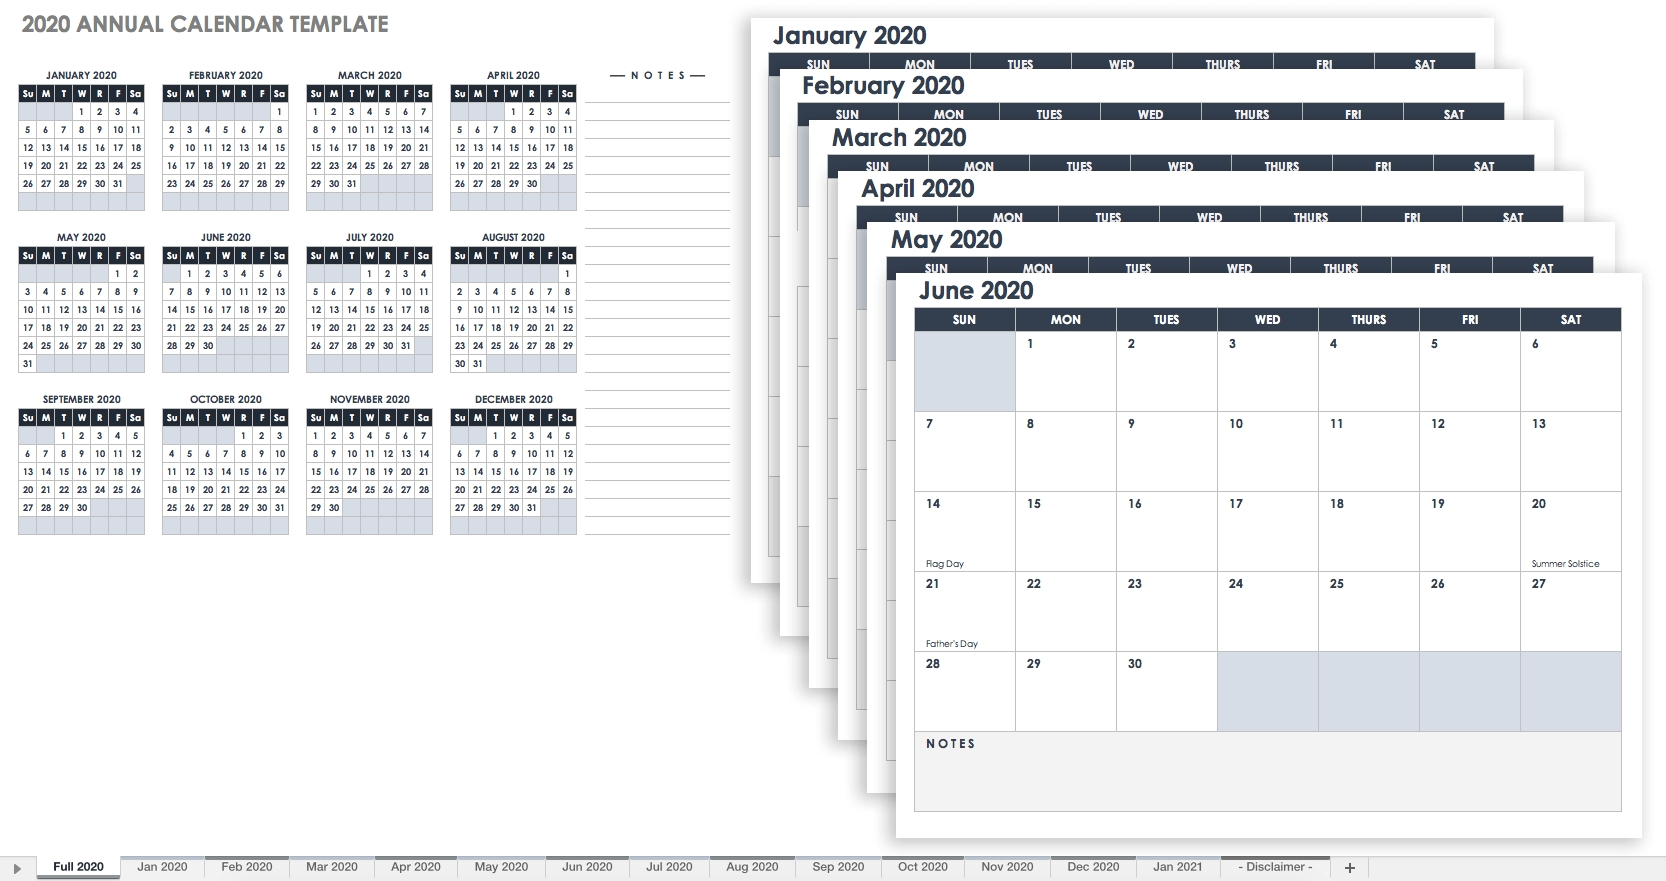 003 Awful Free Excel Calendar Template Idea  2020 Monthly Download Biweekly Payroll 2018Full